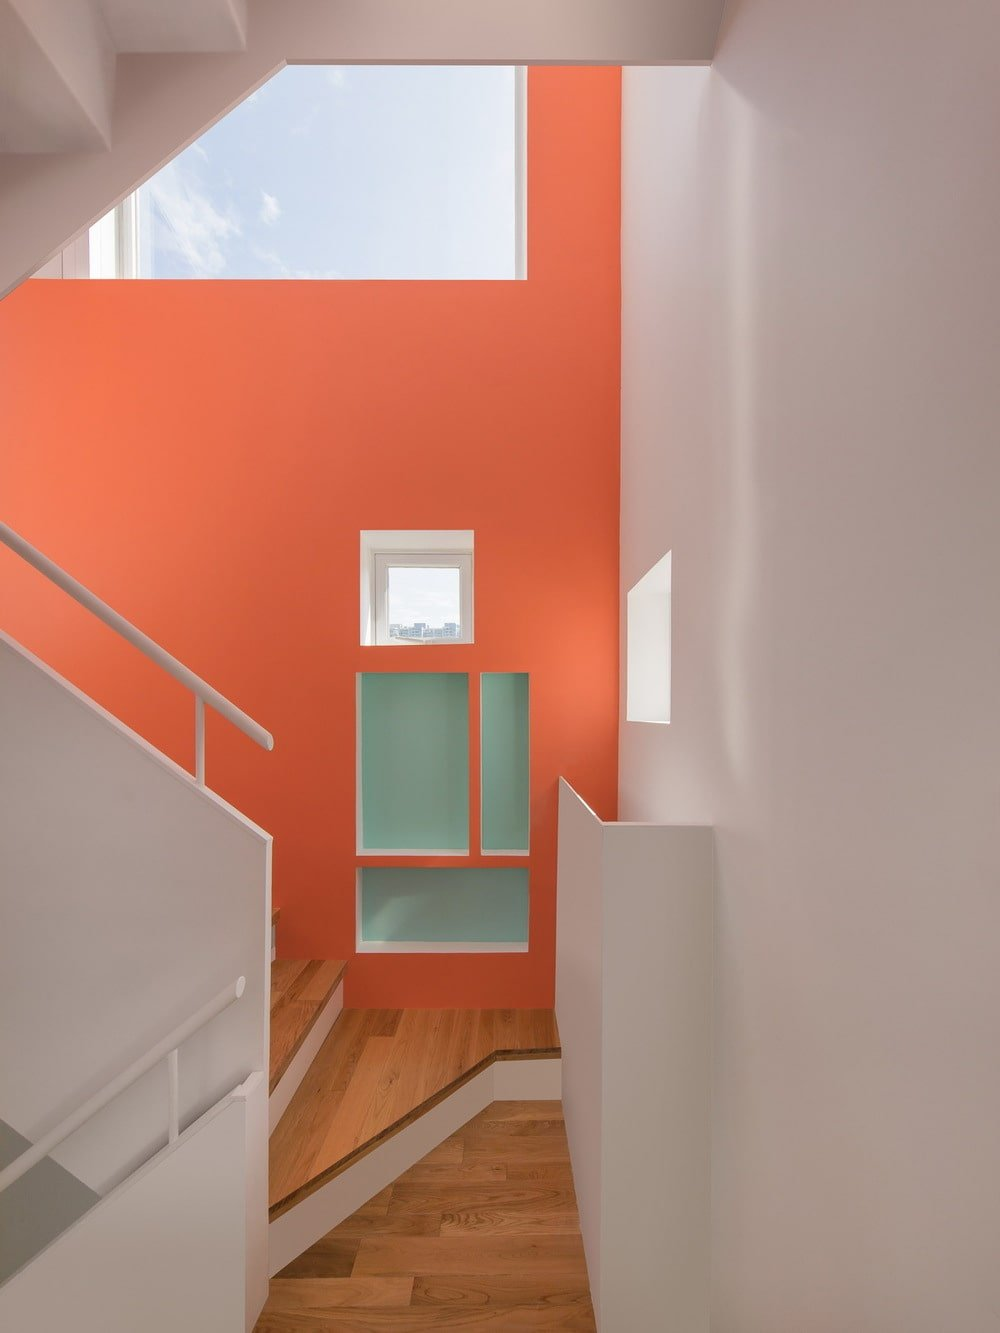 This is a look at the staircase painted with a bright salmon color that pairs well with the white staircase.